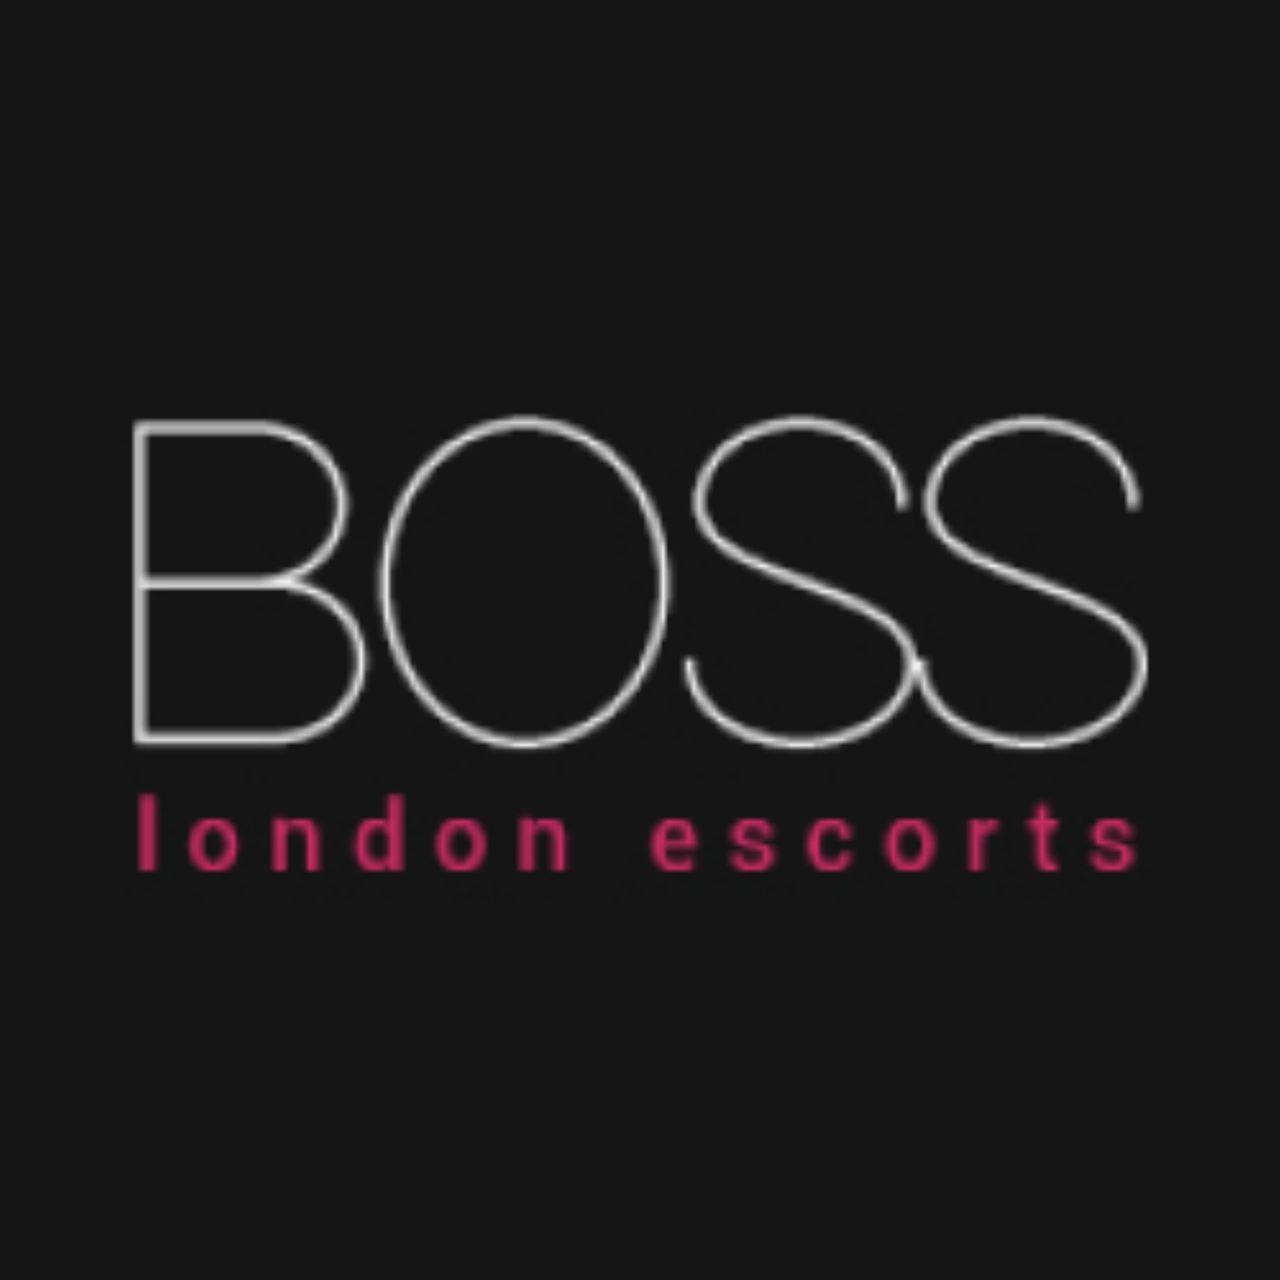 Boss London Escorts